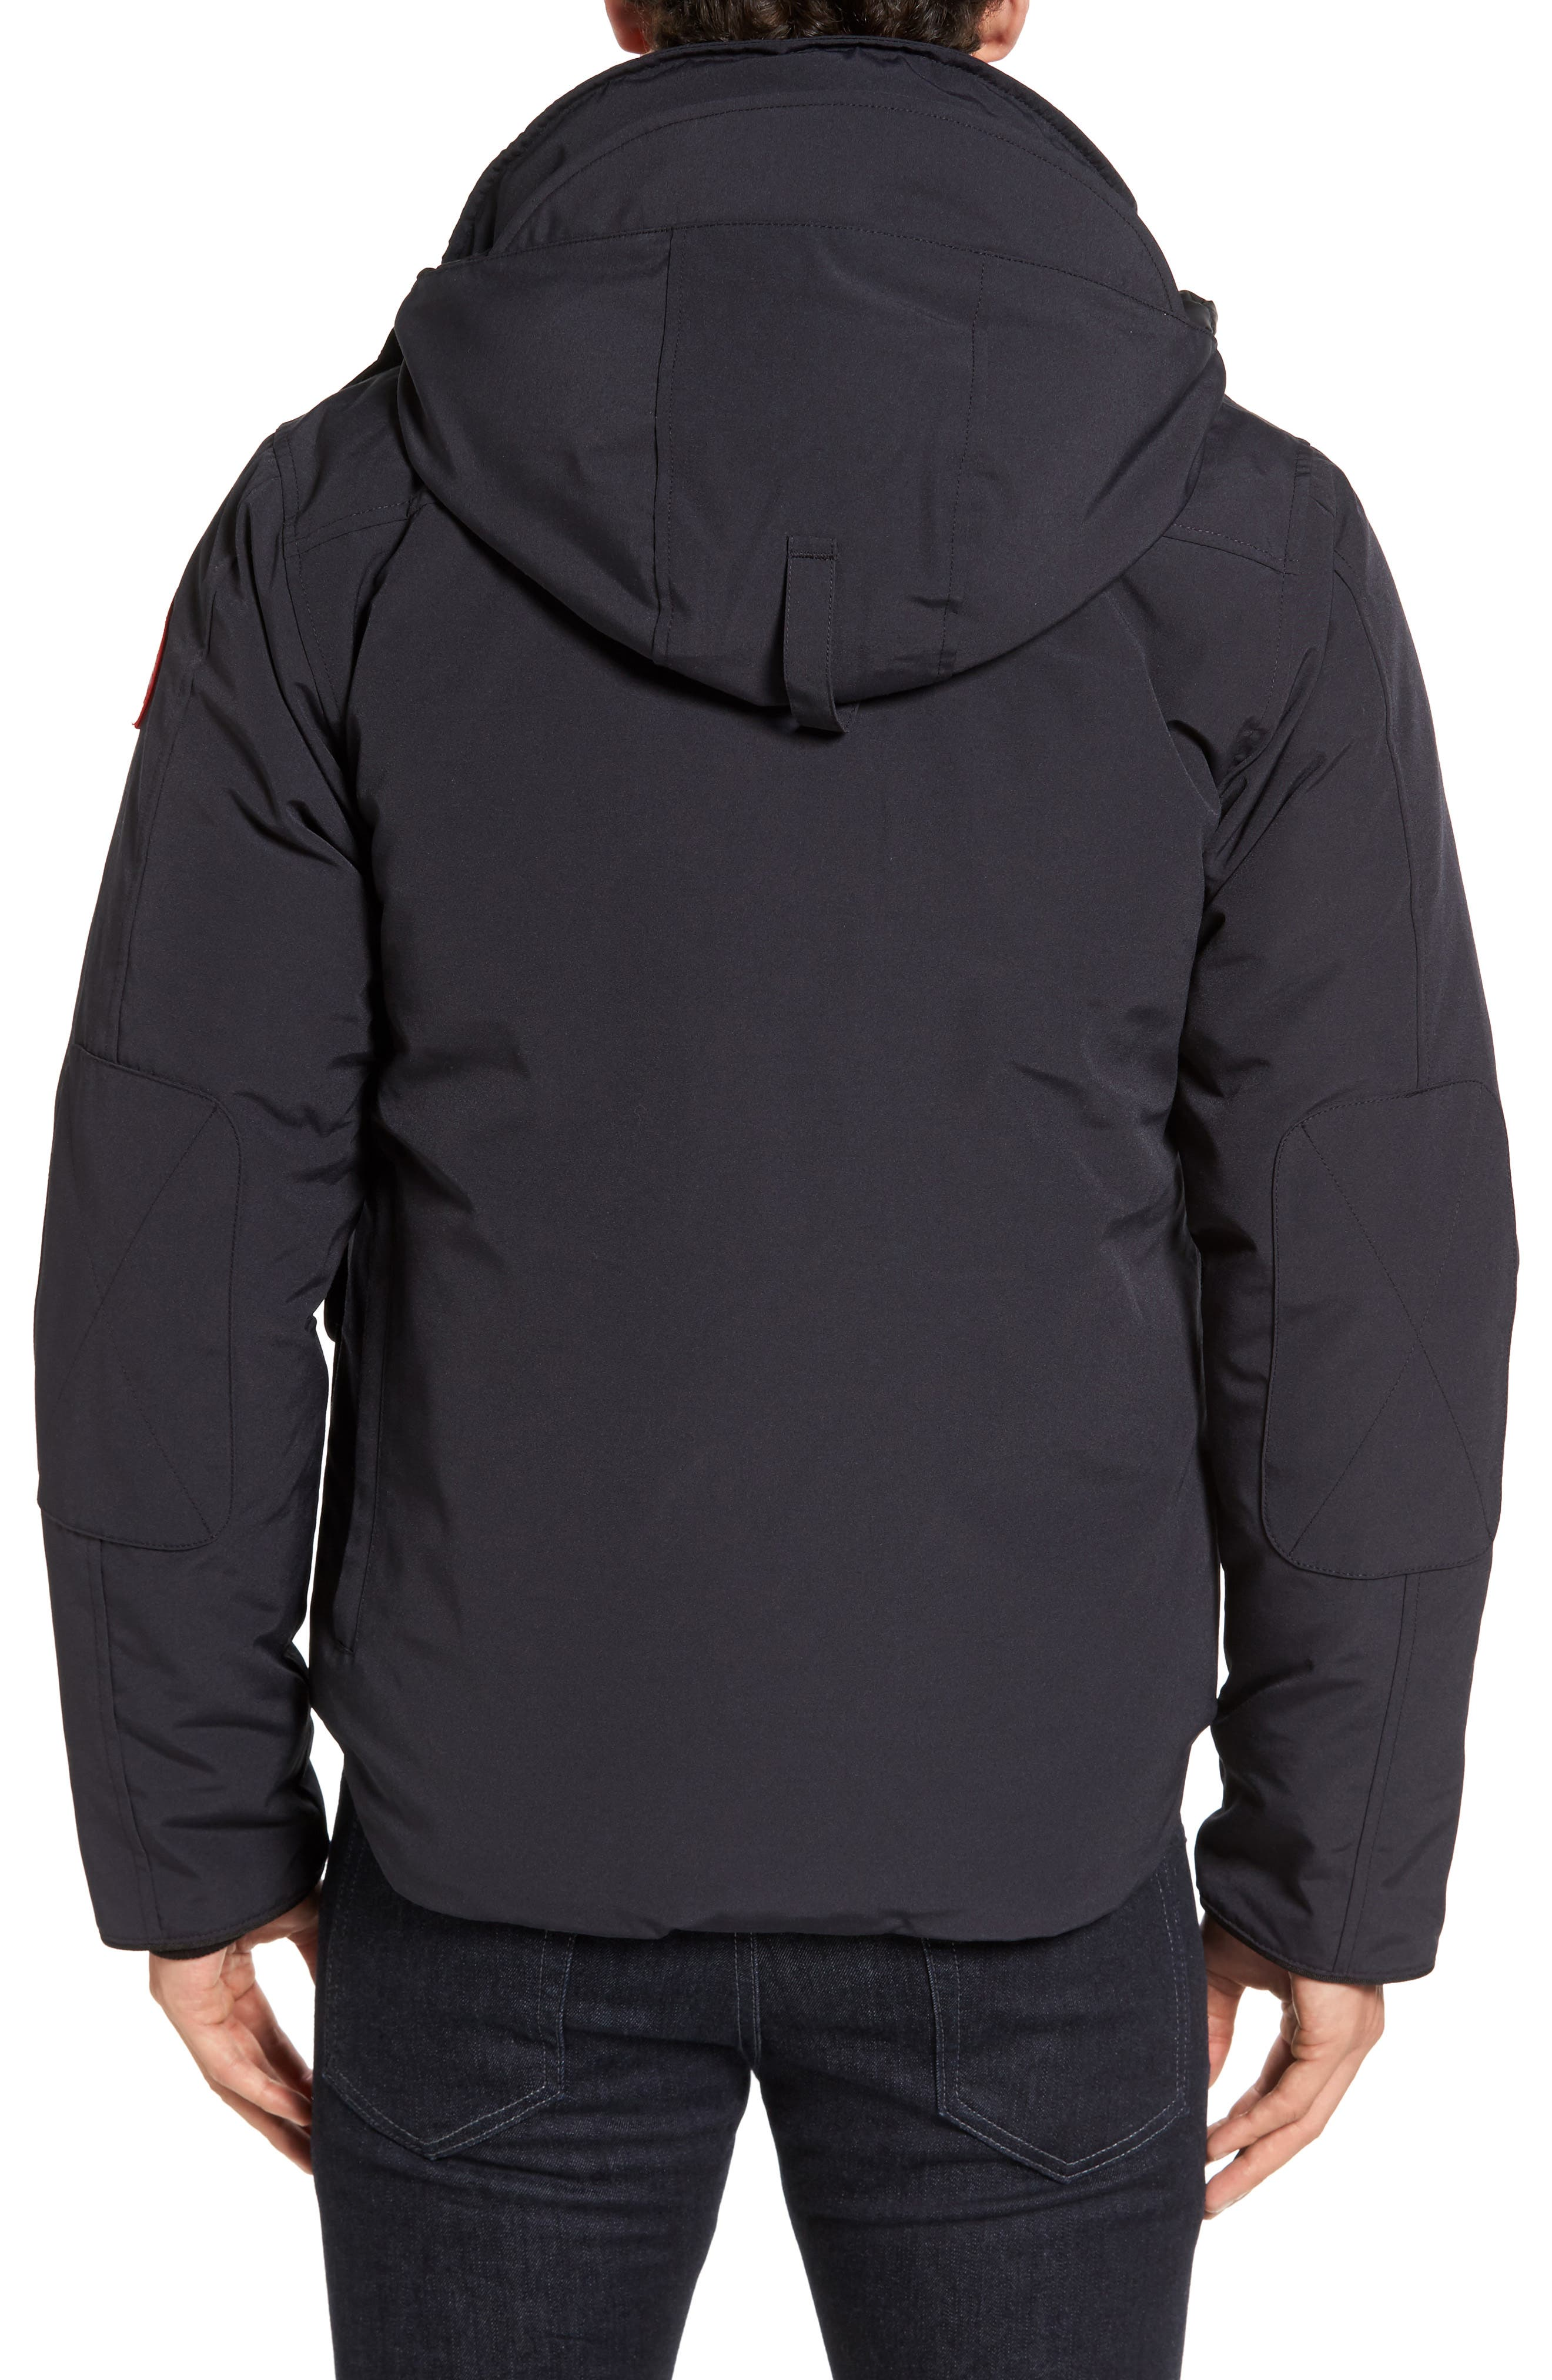 'Selkirk' Slim Fit Water Resistant Down Parka with Detachable Hood,                             Alternate thumbnail 7, color,